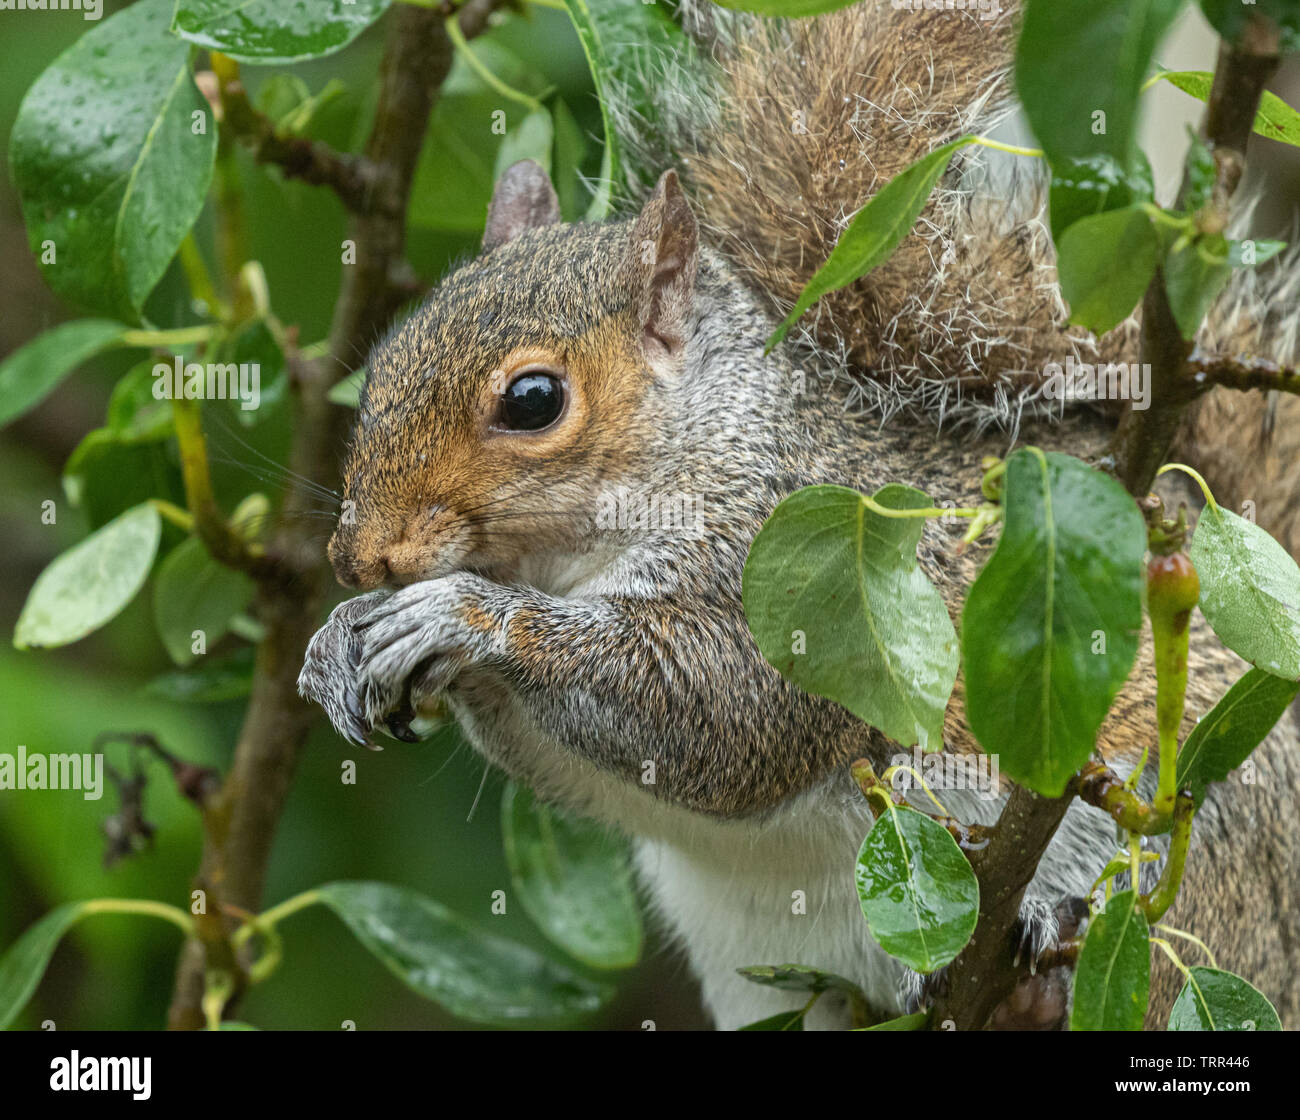 A grey squirrel n a tree eating very small, unripe pears. - Stock Image